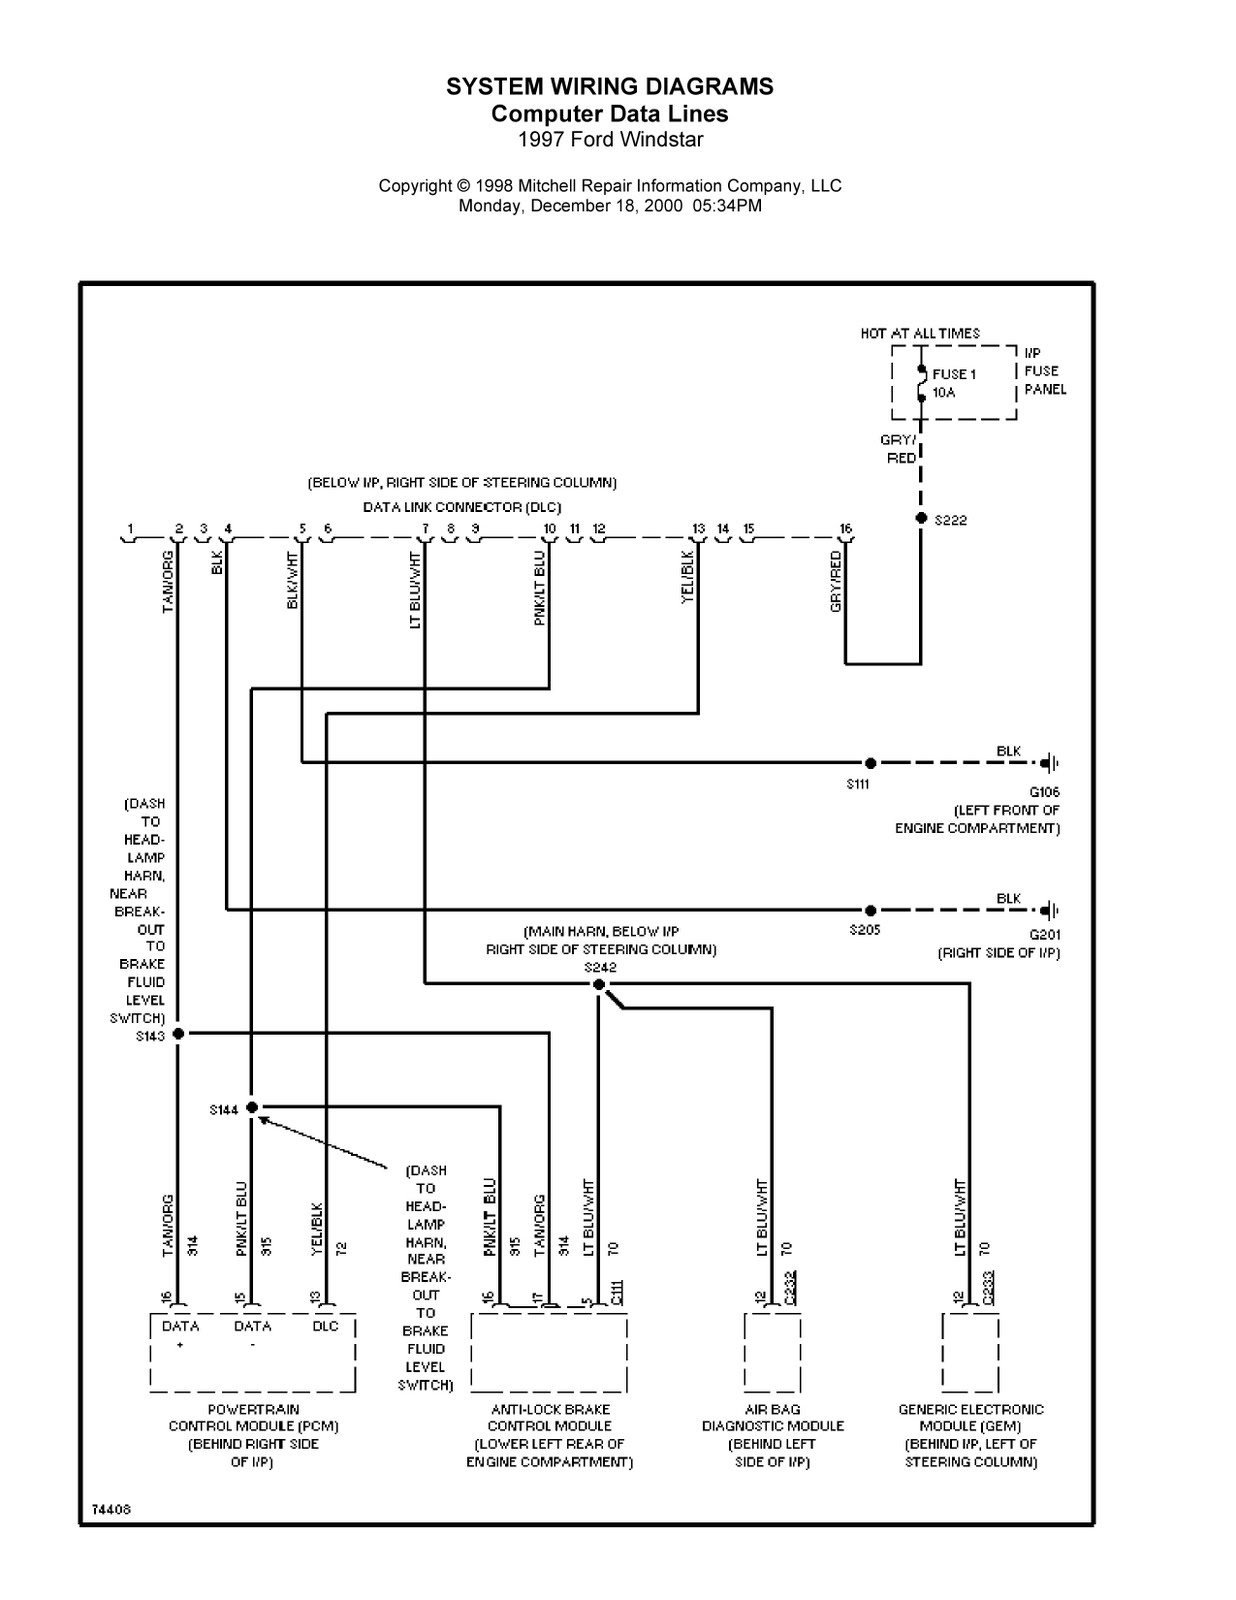 diagram] center console ford windstar wiring diagram full version hd  quality wiring diagram - tickdiagrammn.promozionifarmacie.it  tickdiagrammn.promozionifarmacie.it